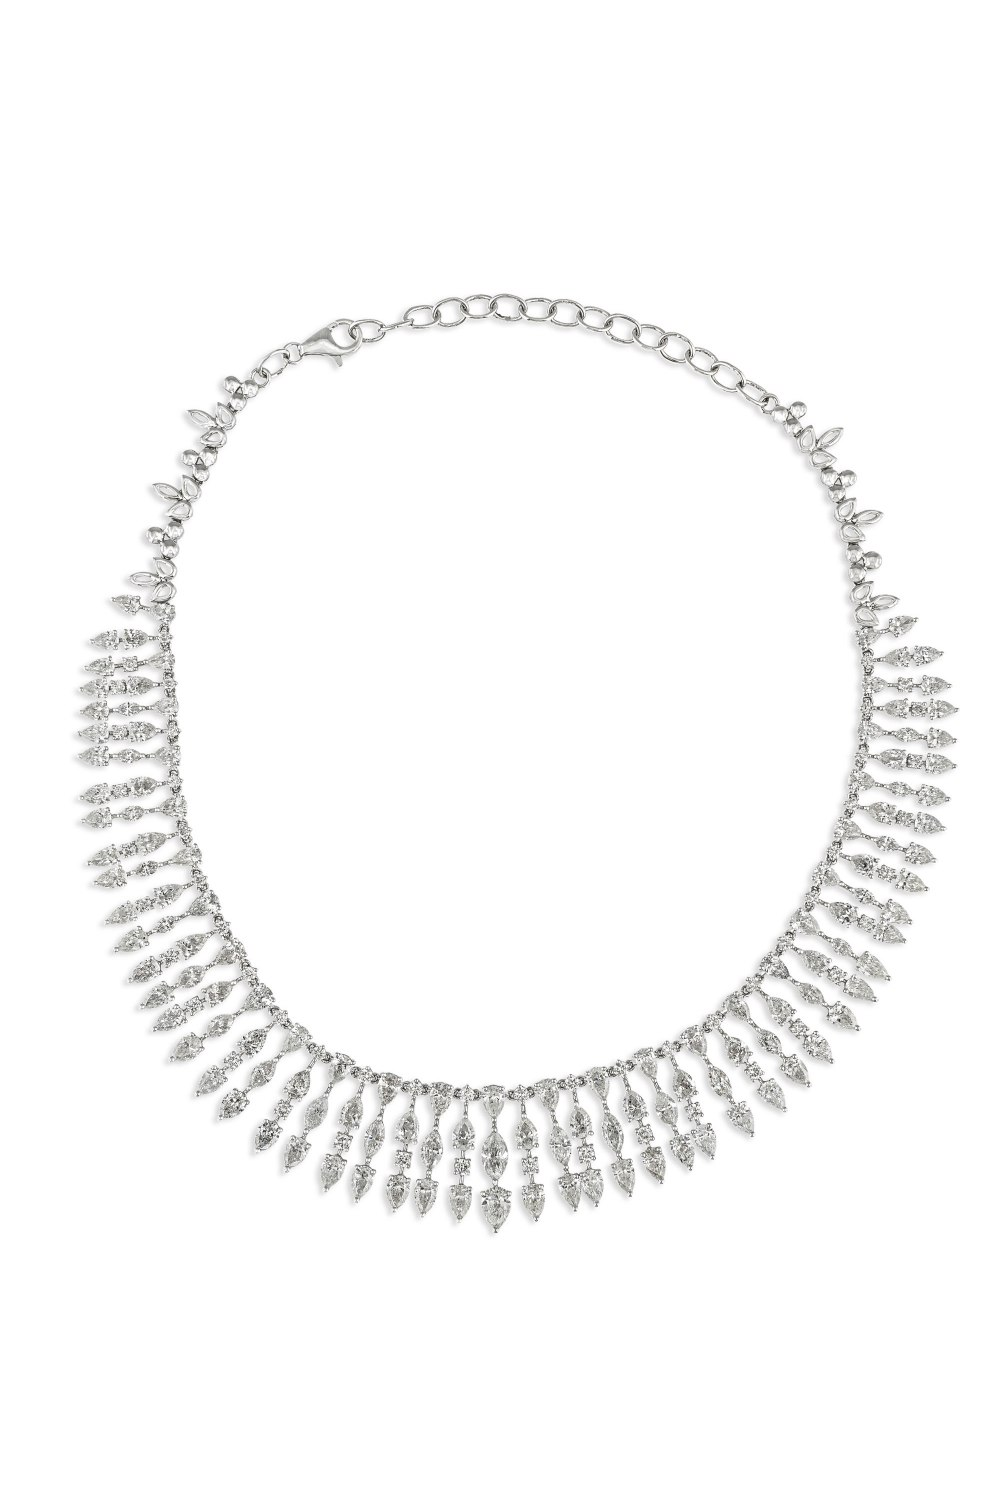 Marquise and Brilliant Cut Diamond Necklace